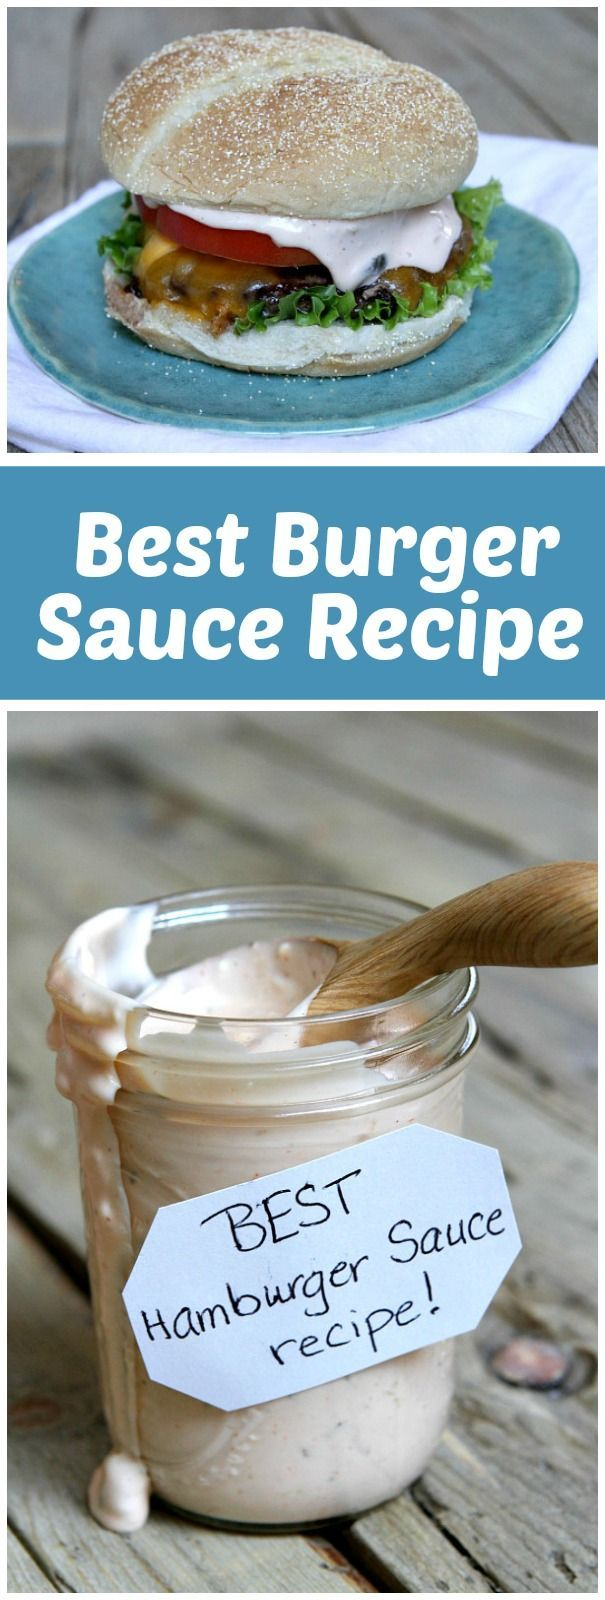 The absolute Best Burger Sauce recipe - for your home-grilled burgers!   From http://RecipeGirl.com.